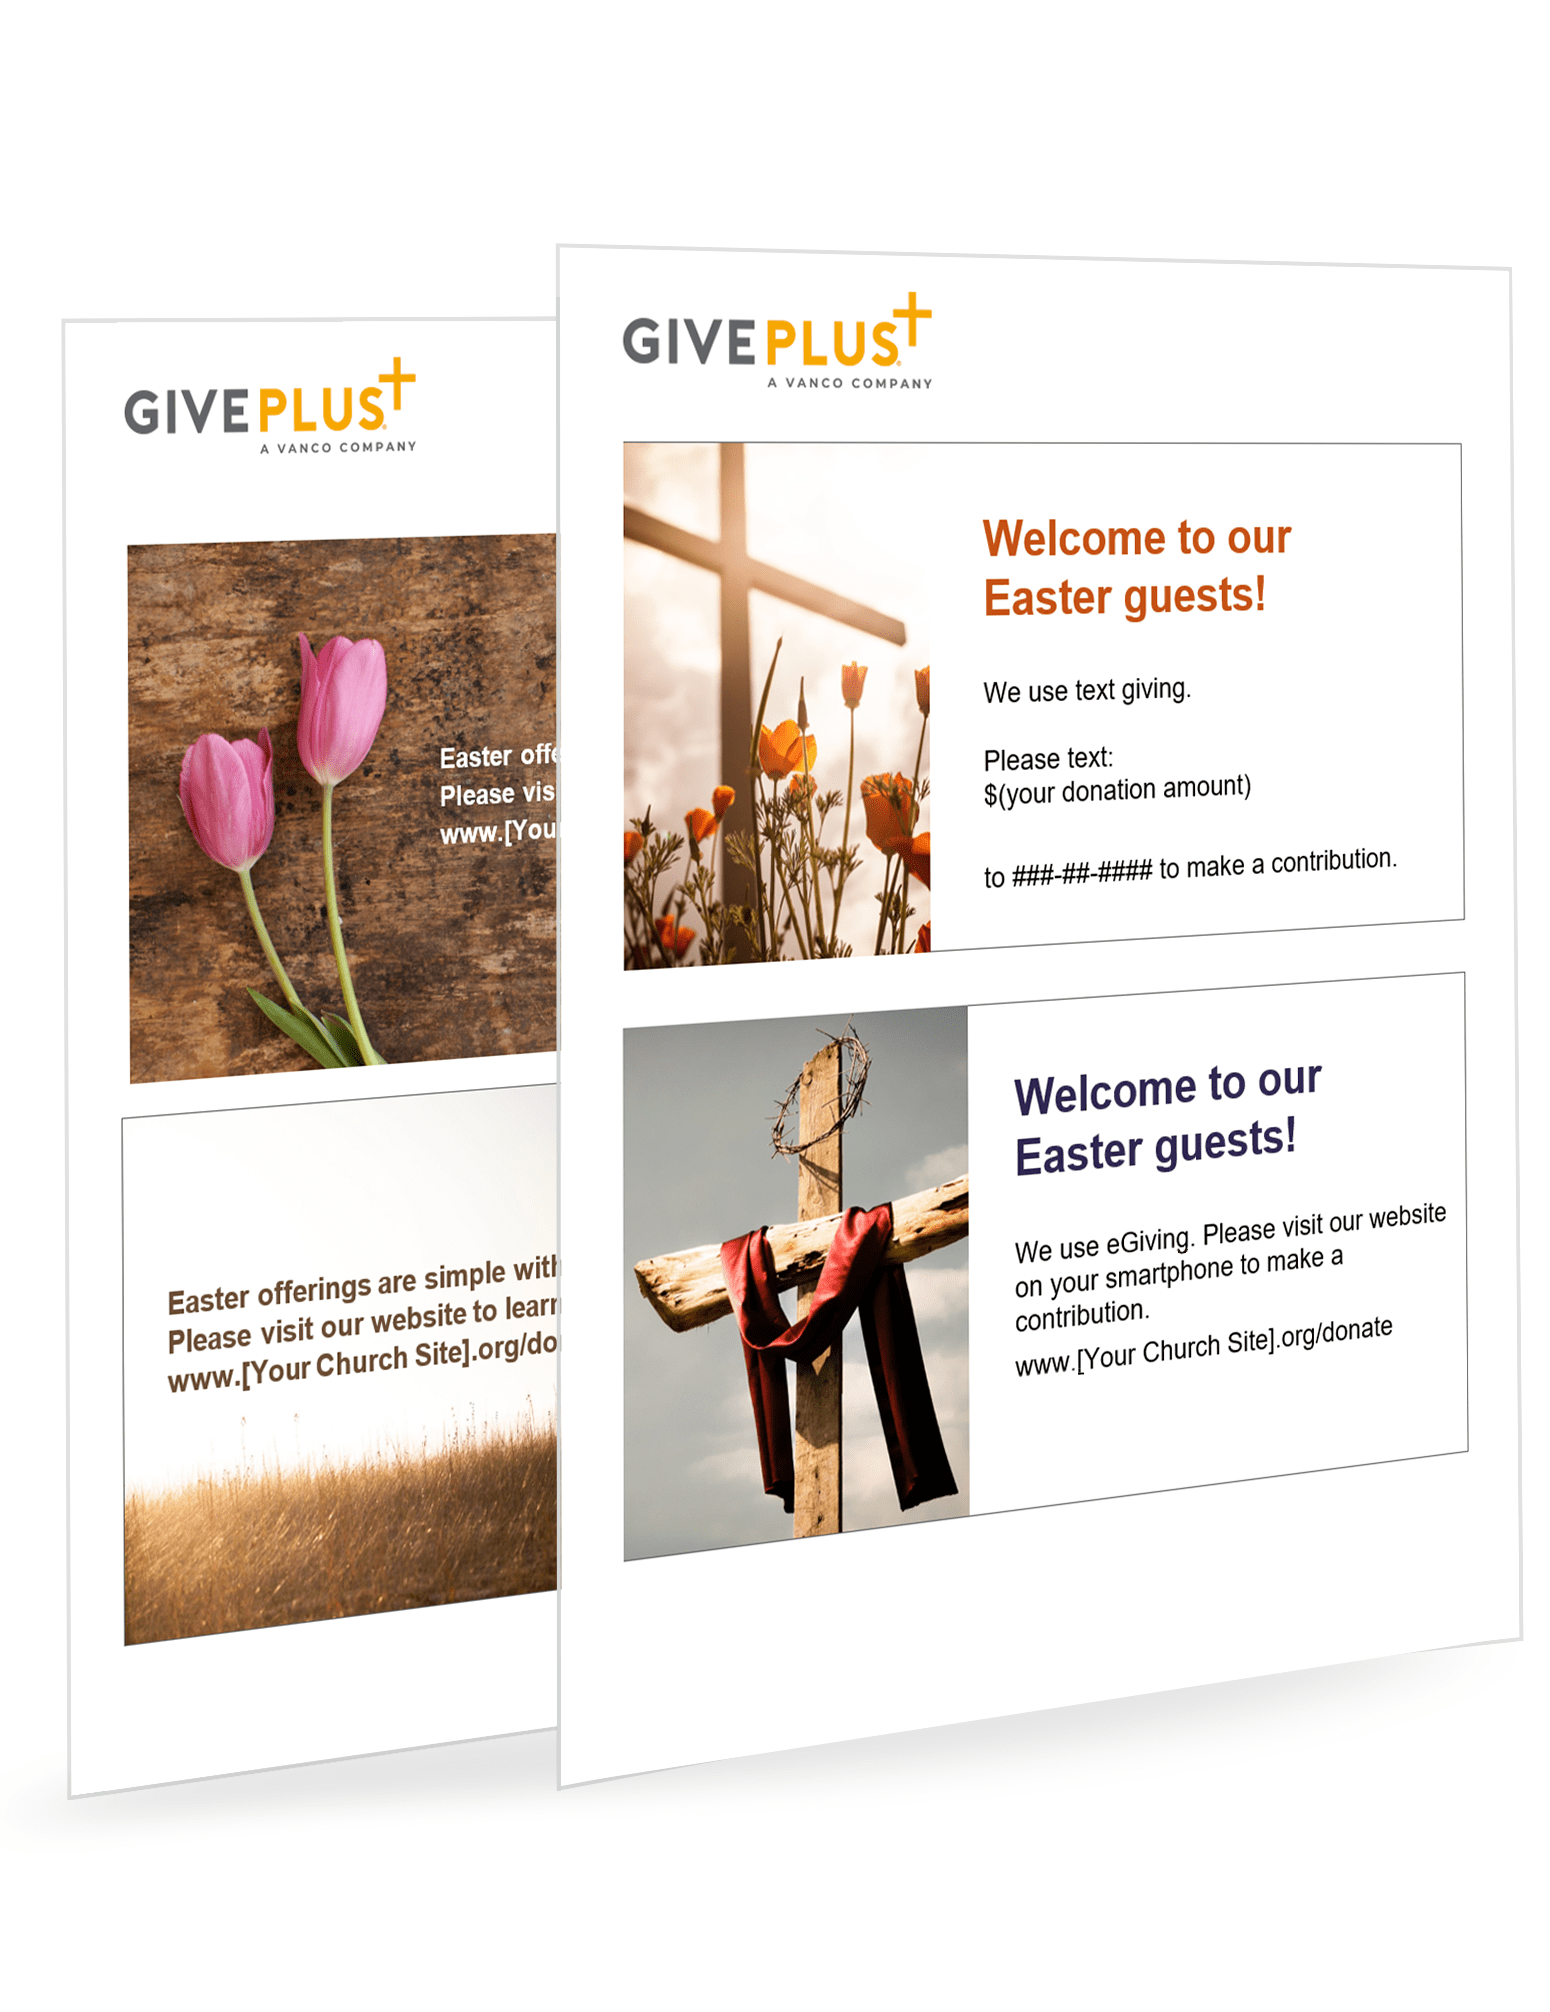 Vanco_GivePlus_Easter_Giving_Messages_thumbv2